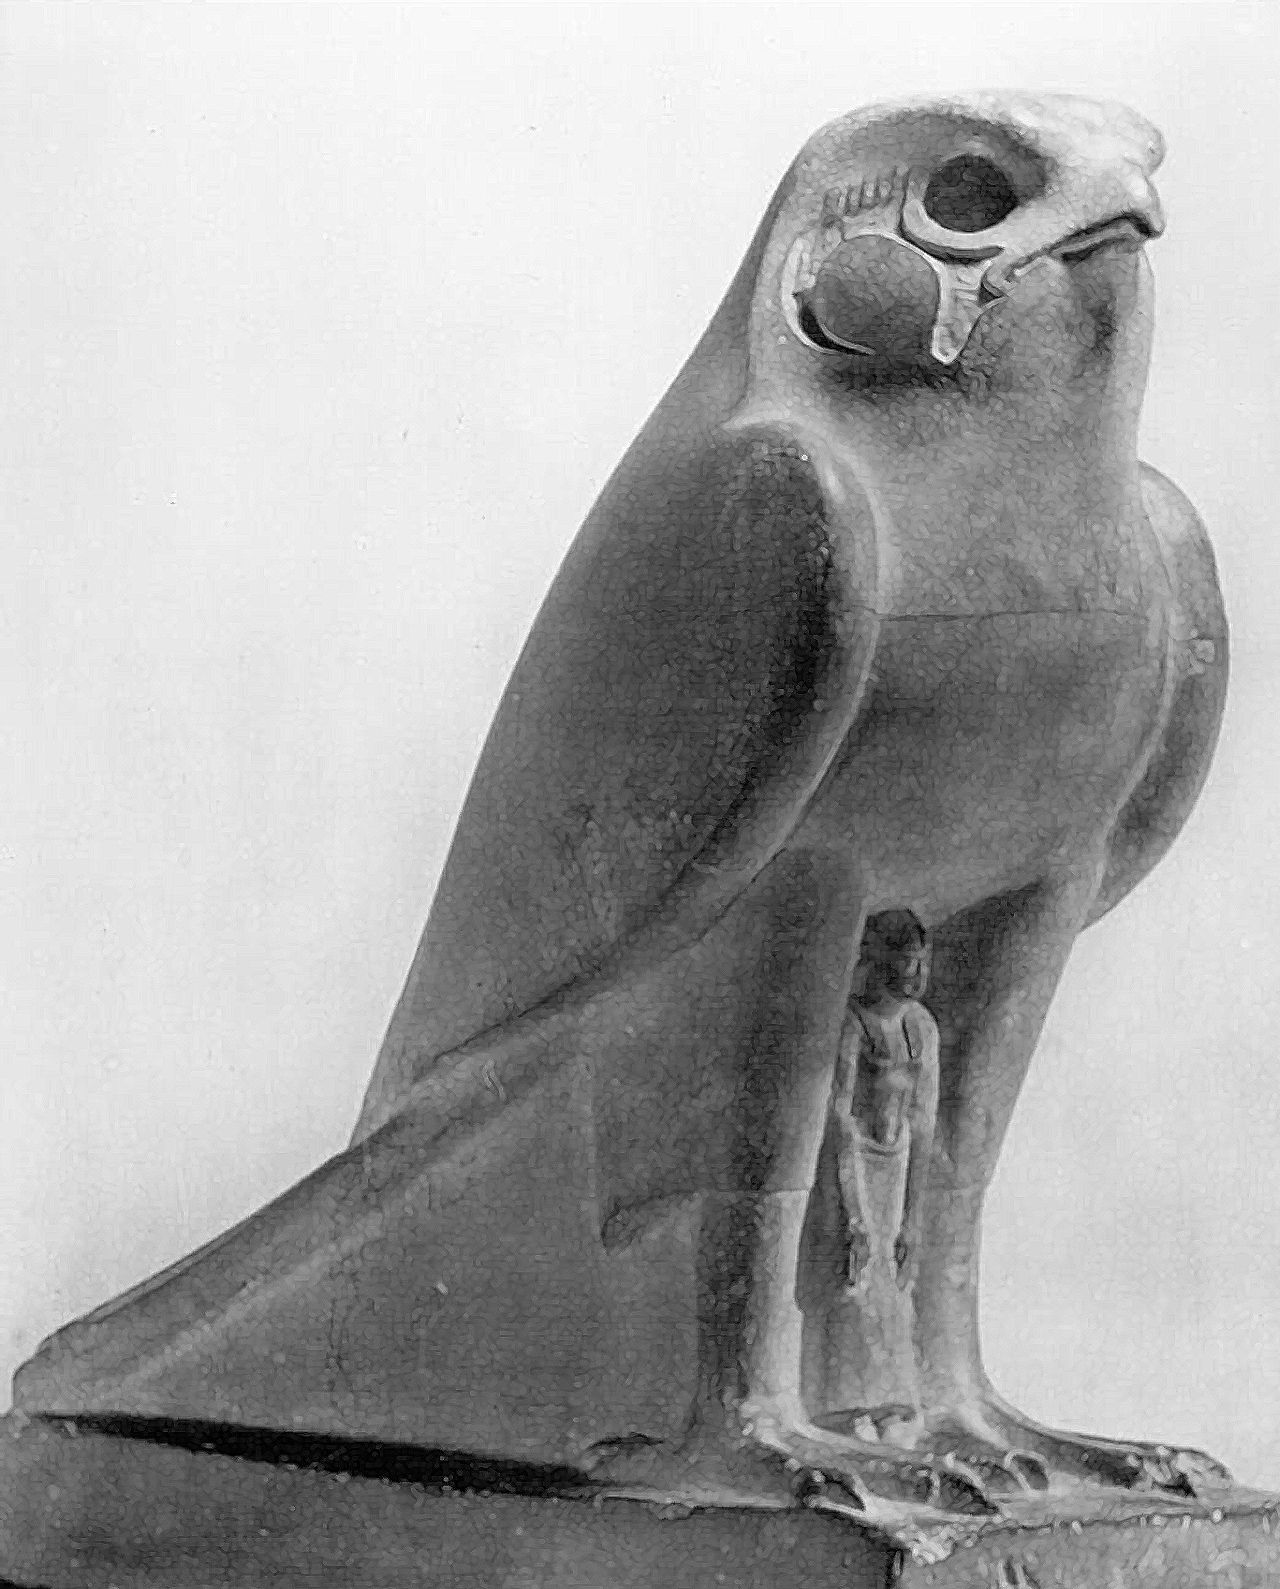 Images of horus the egyptian god the eye of horus is an ancient images of horus the egyptian god the eye of horus is an ancient egyptian symbol biocorpaavc Images